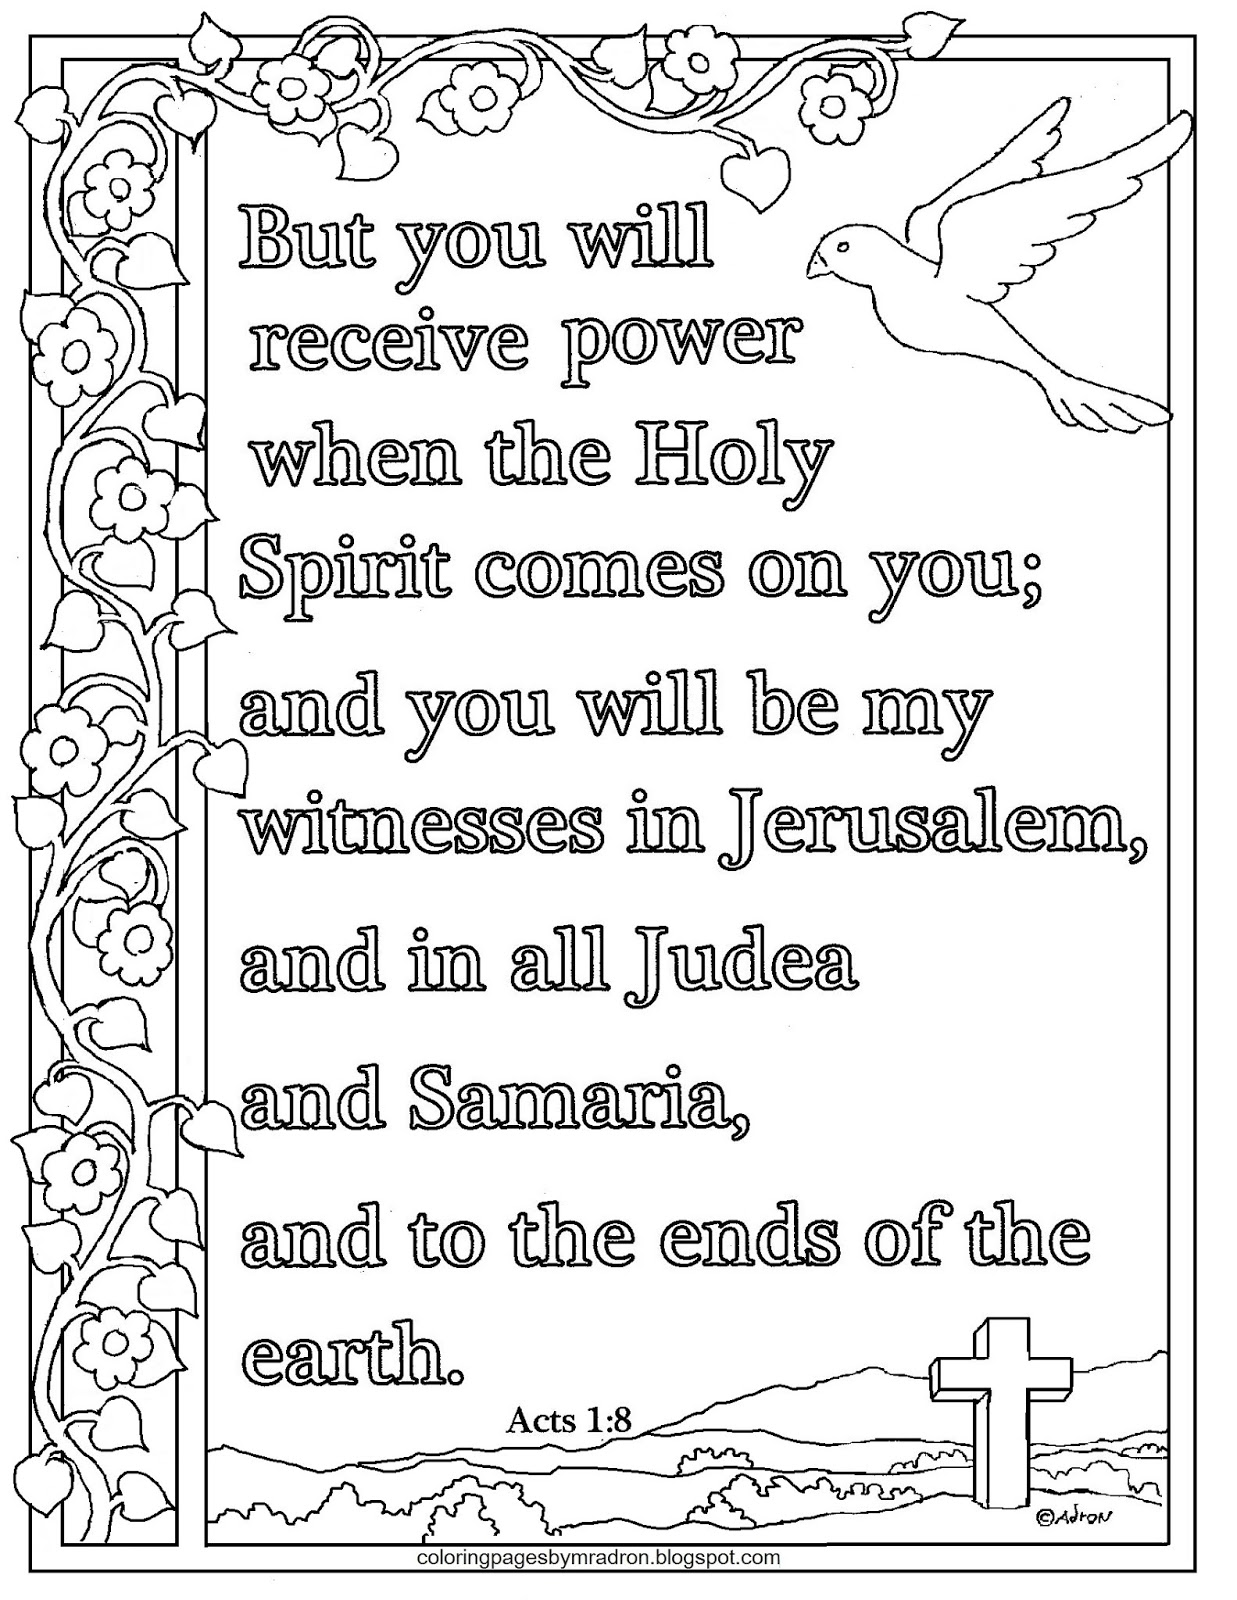 Coloring Pages For Kids By Mr Adron Acts 1 8 Print And Color Page You Will Be My Witnesses In Jerusalem